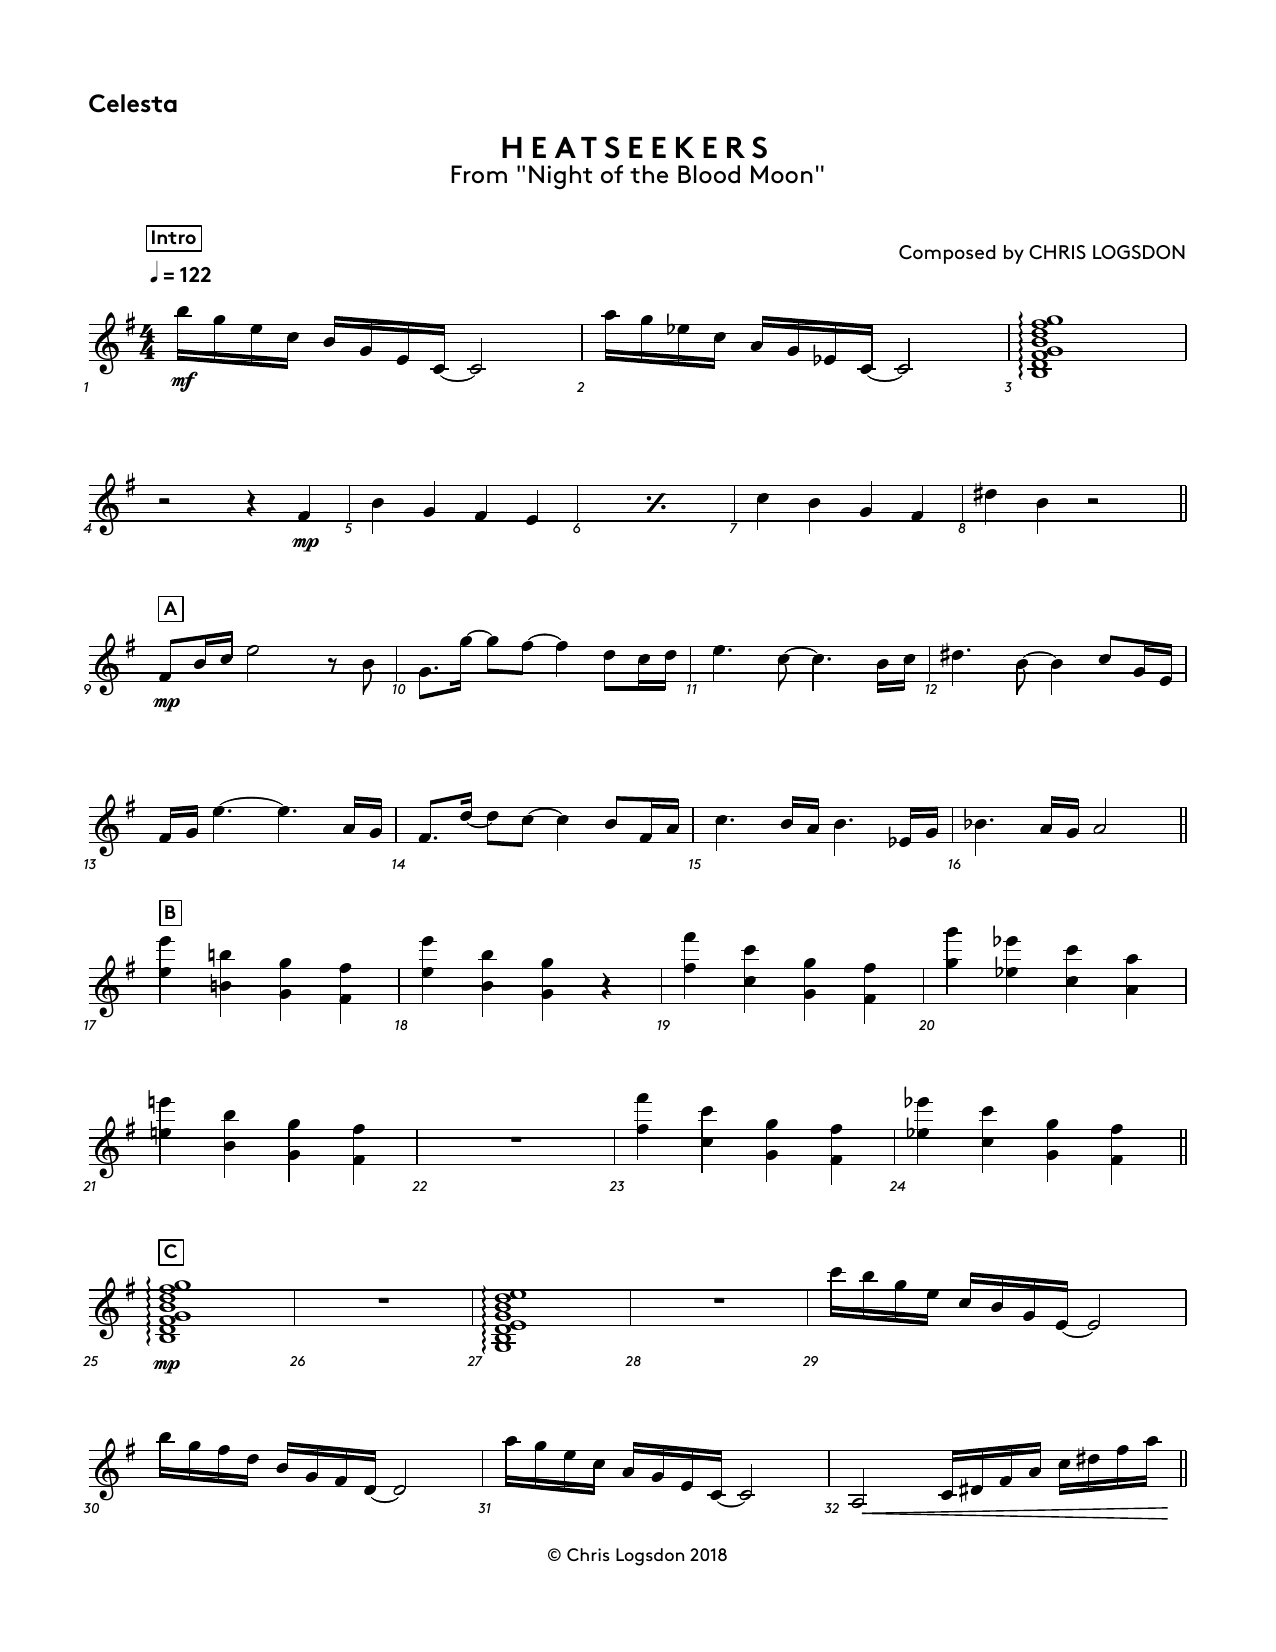 Chris Logsdon Heatseekers (from Night of the Blood Moon) - Celesta sheet music notes and chords. Download Printable PDF.